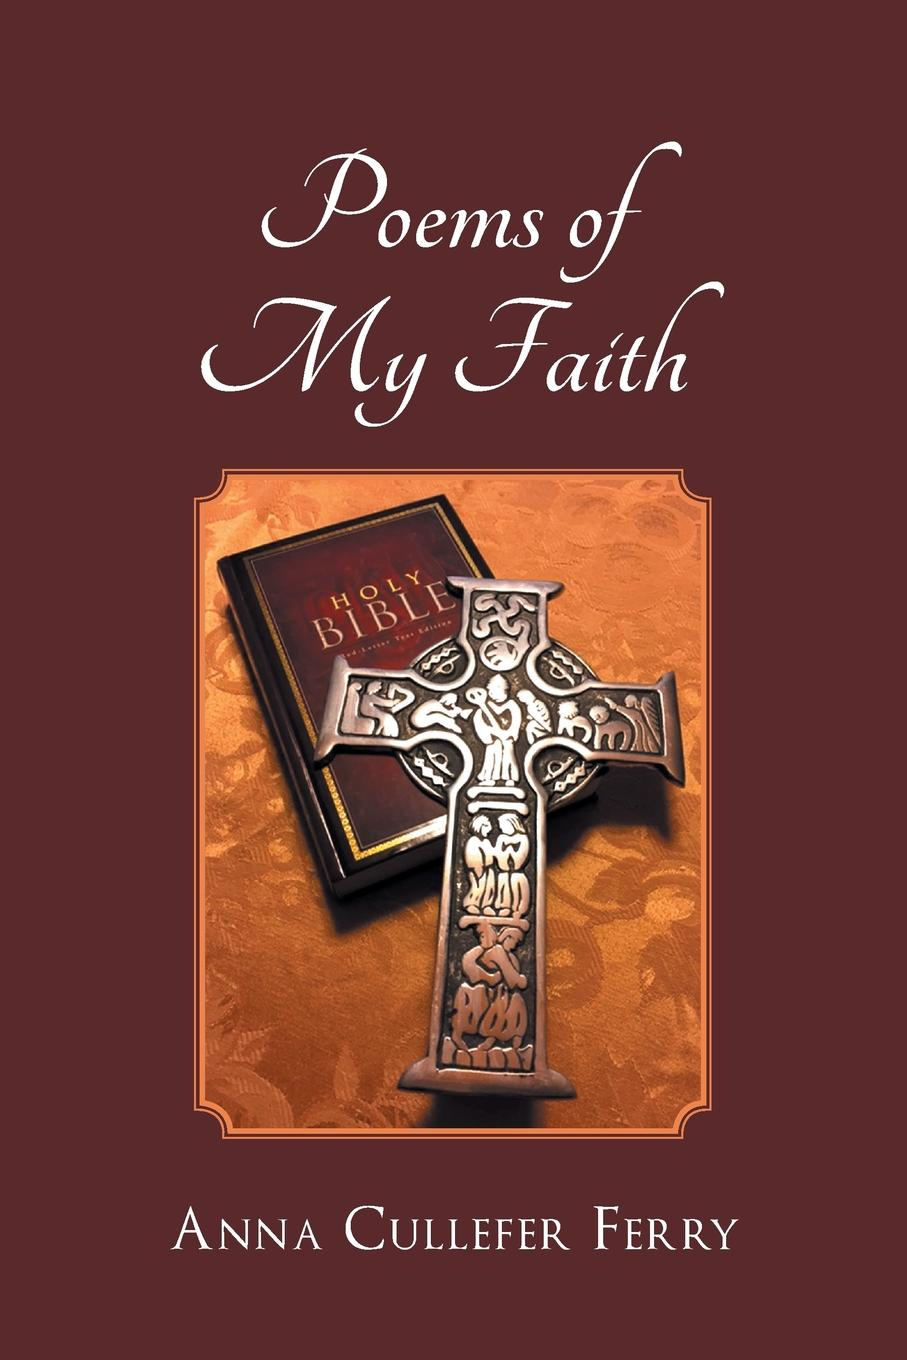 Anna Cullefer Ferry Poems of My Faith matthew e nordin musings of the northern poet poems of love and faith